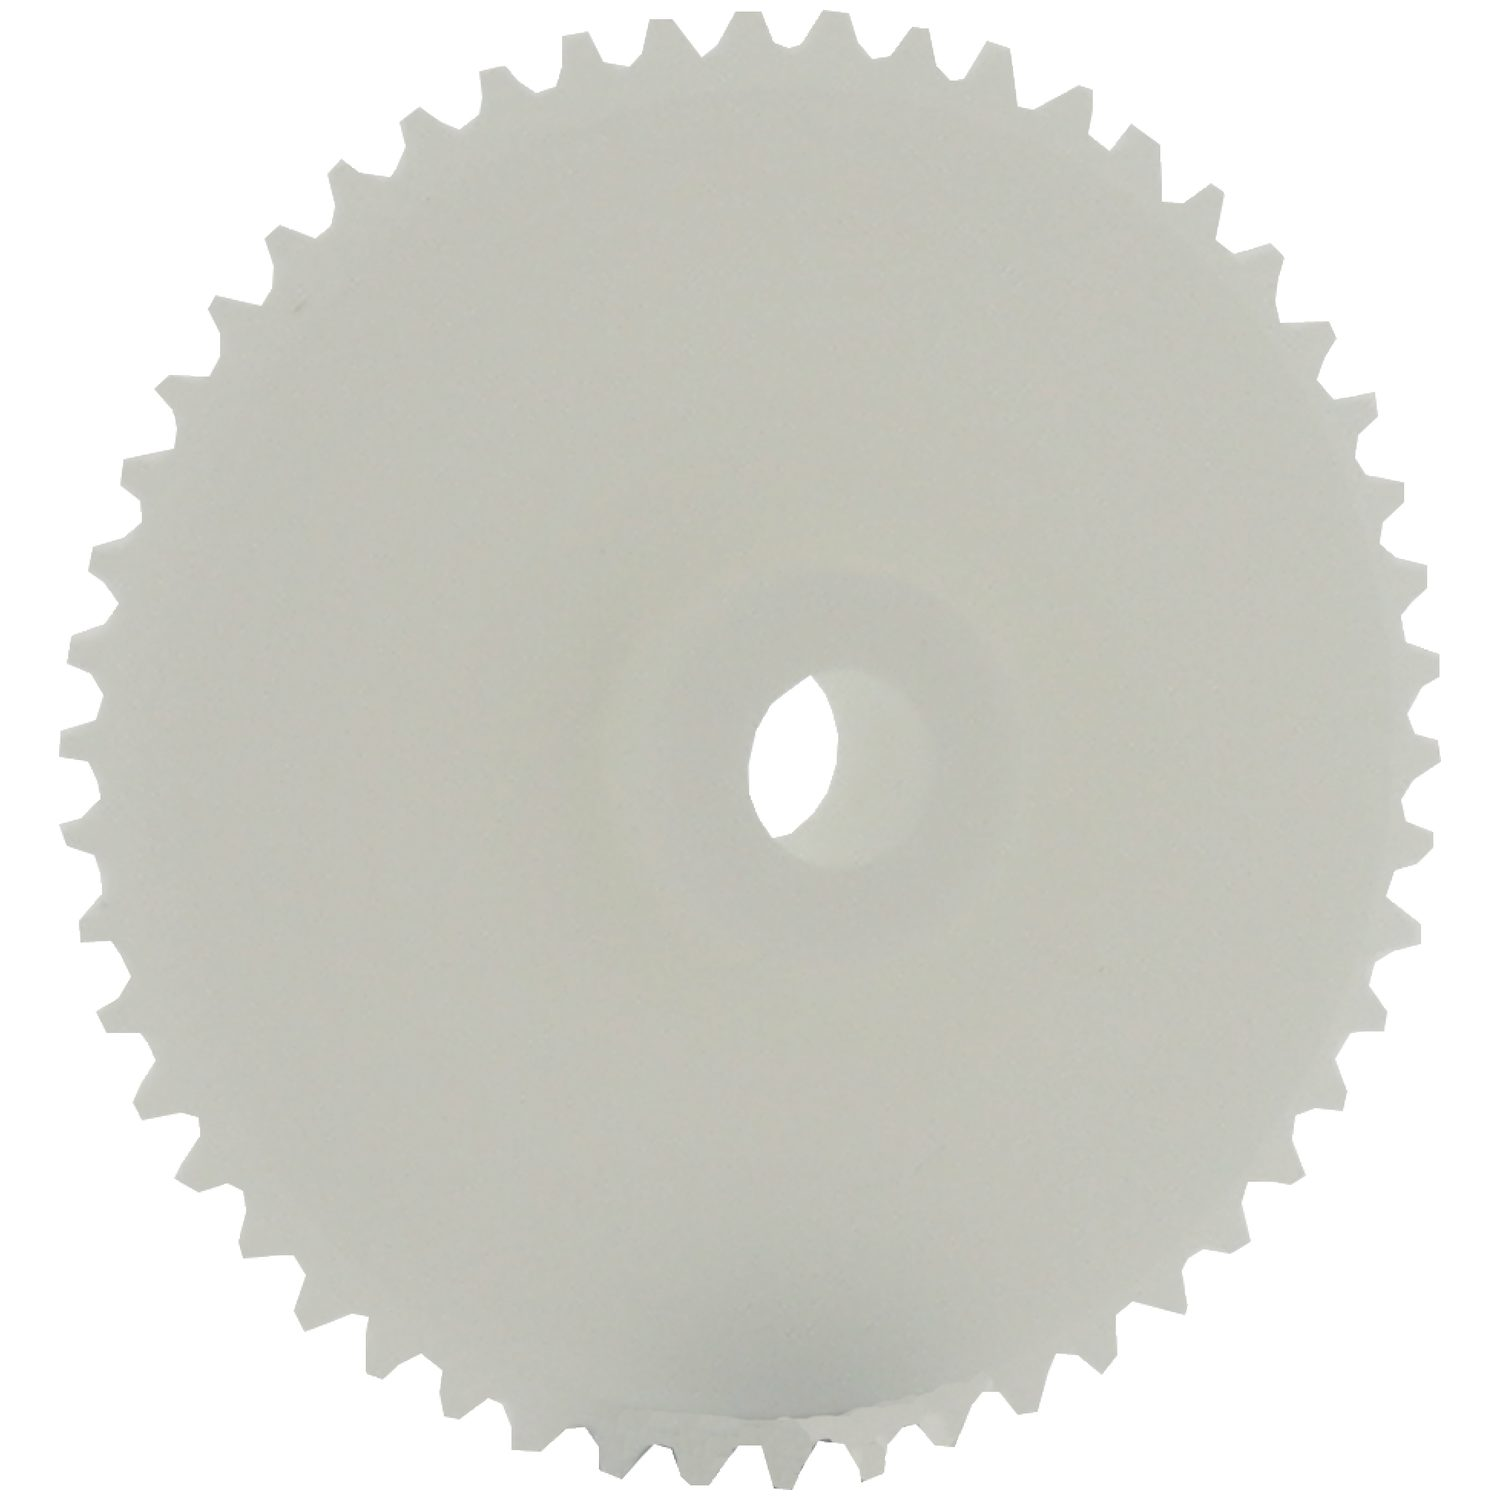 R1360.9 - Sprockets - nylatron, pin hub